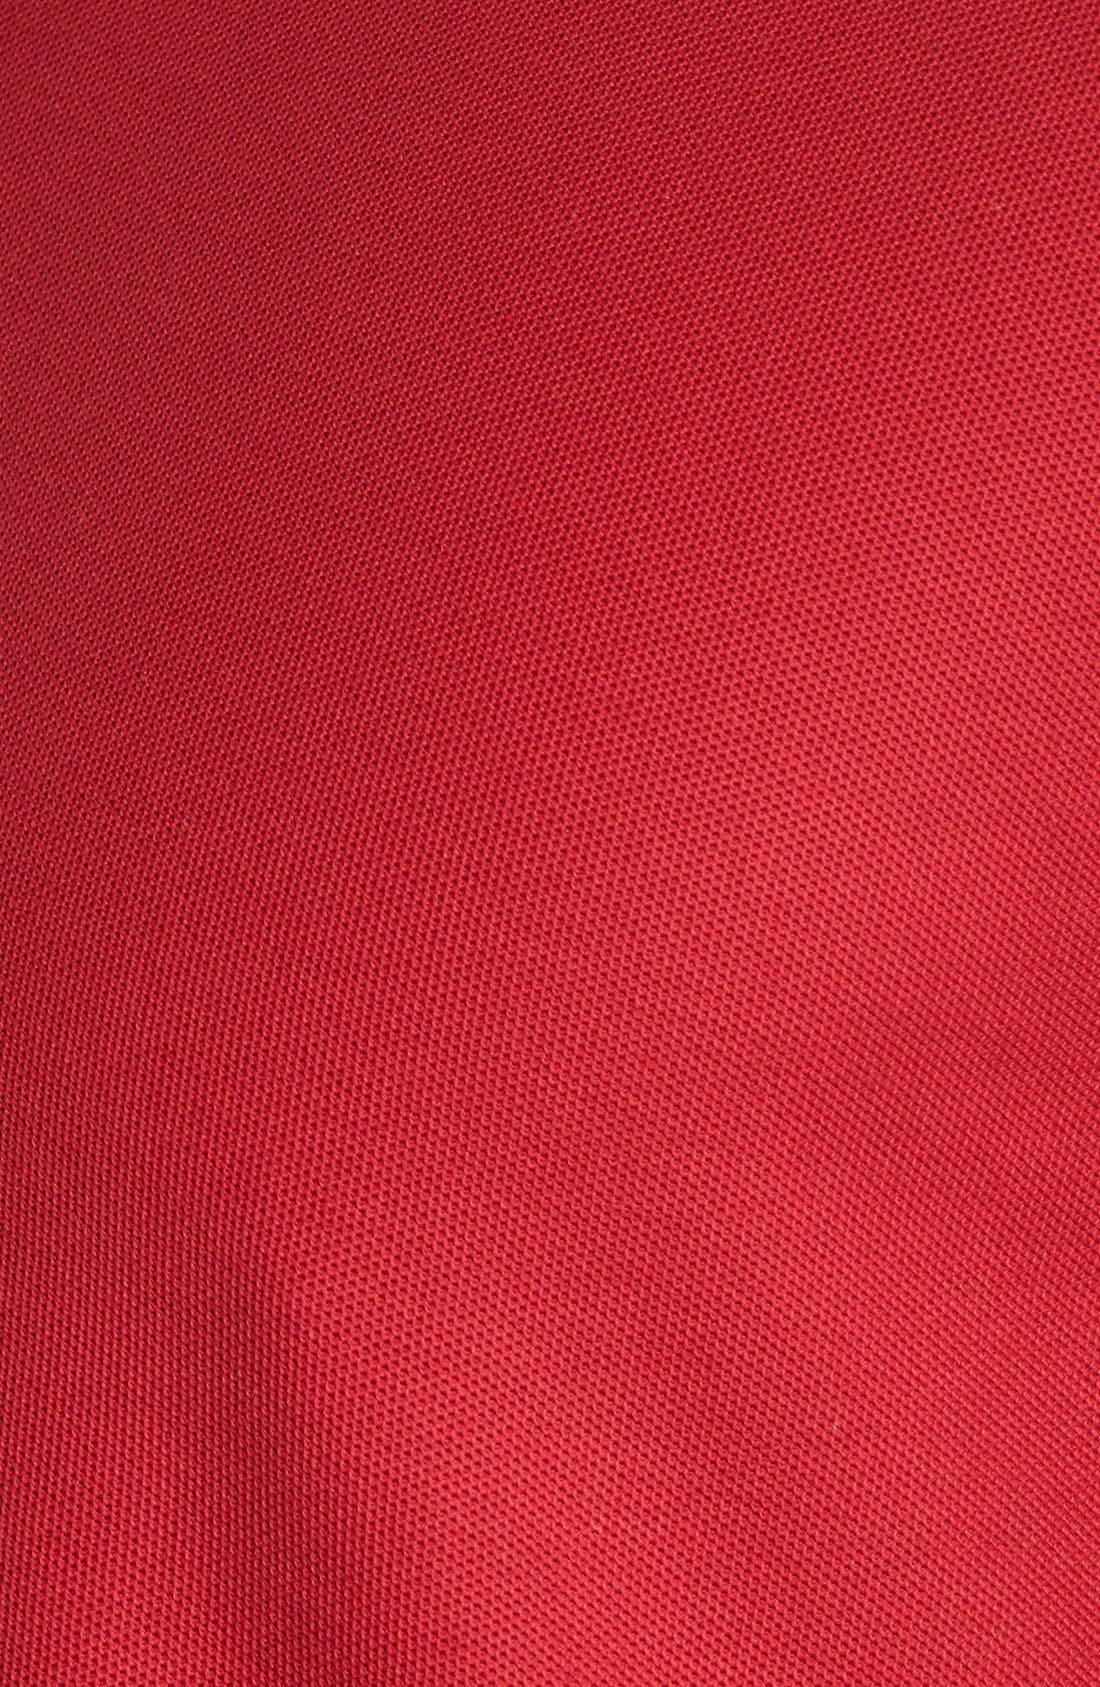 Classic Regular Fit Piqué Polo,                             Alternate thumbnail 5, color,                             Red Rio